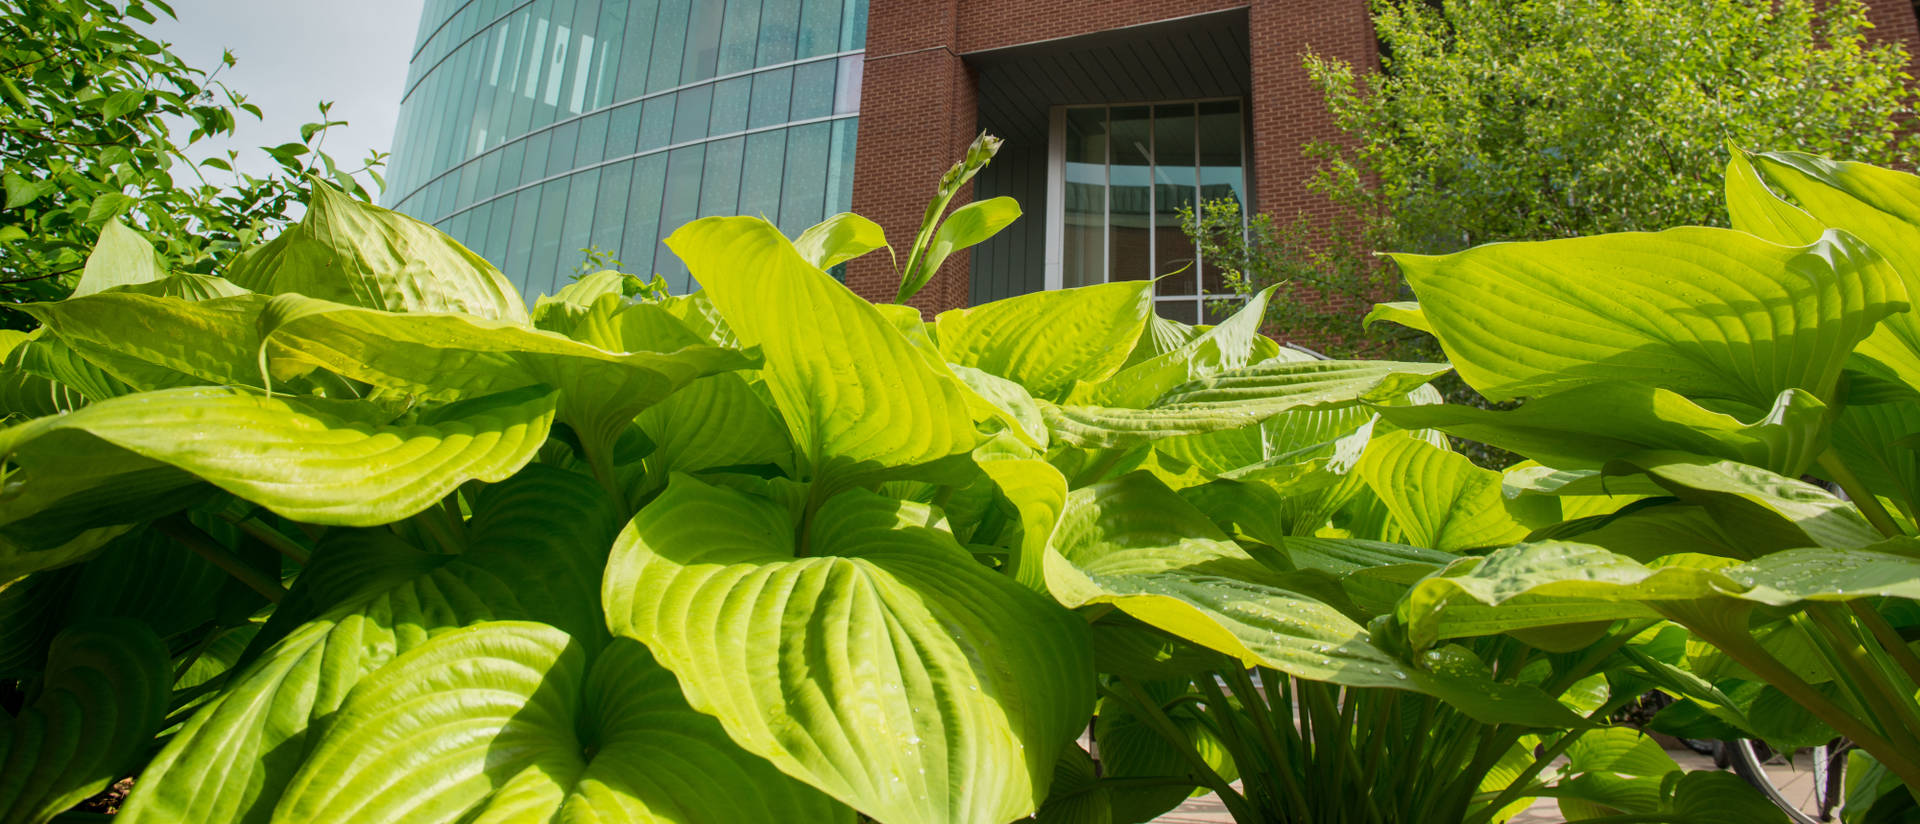 Hosta plants on Campus